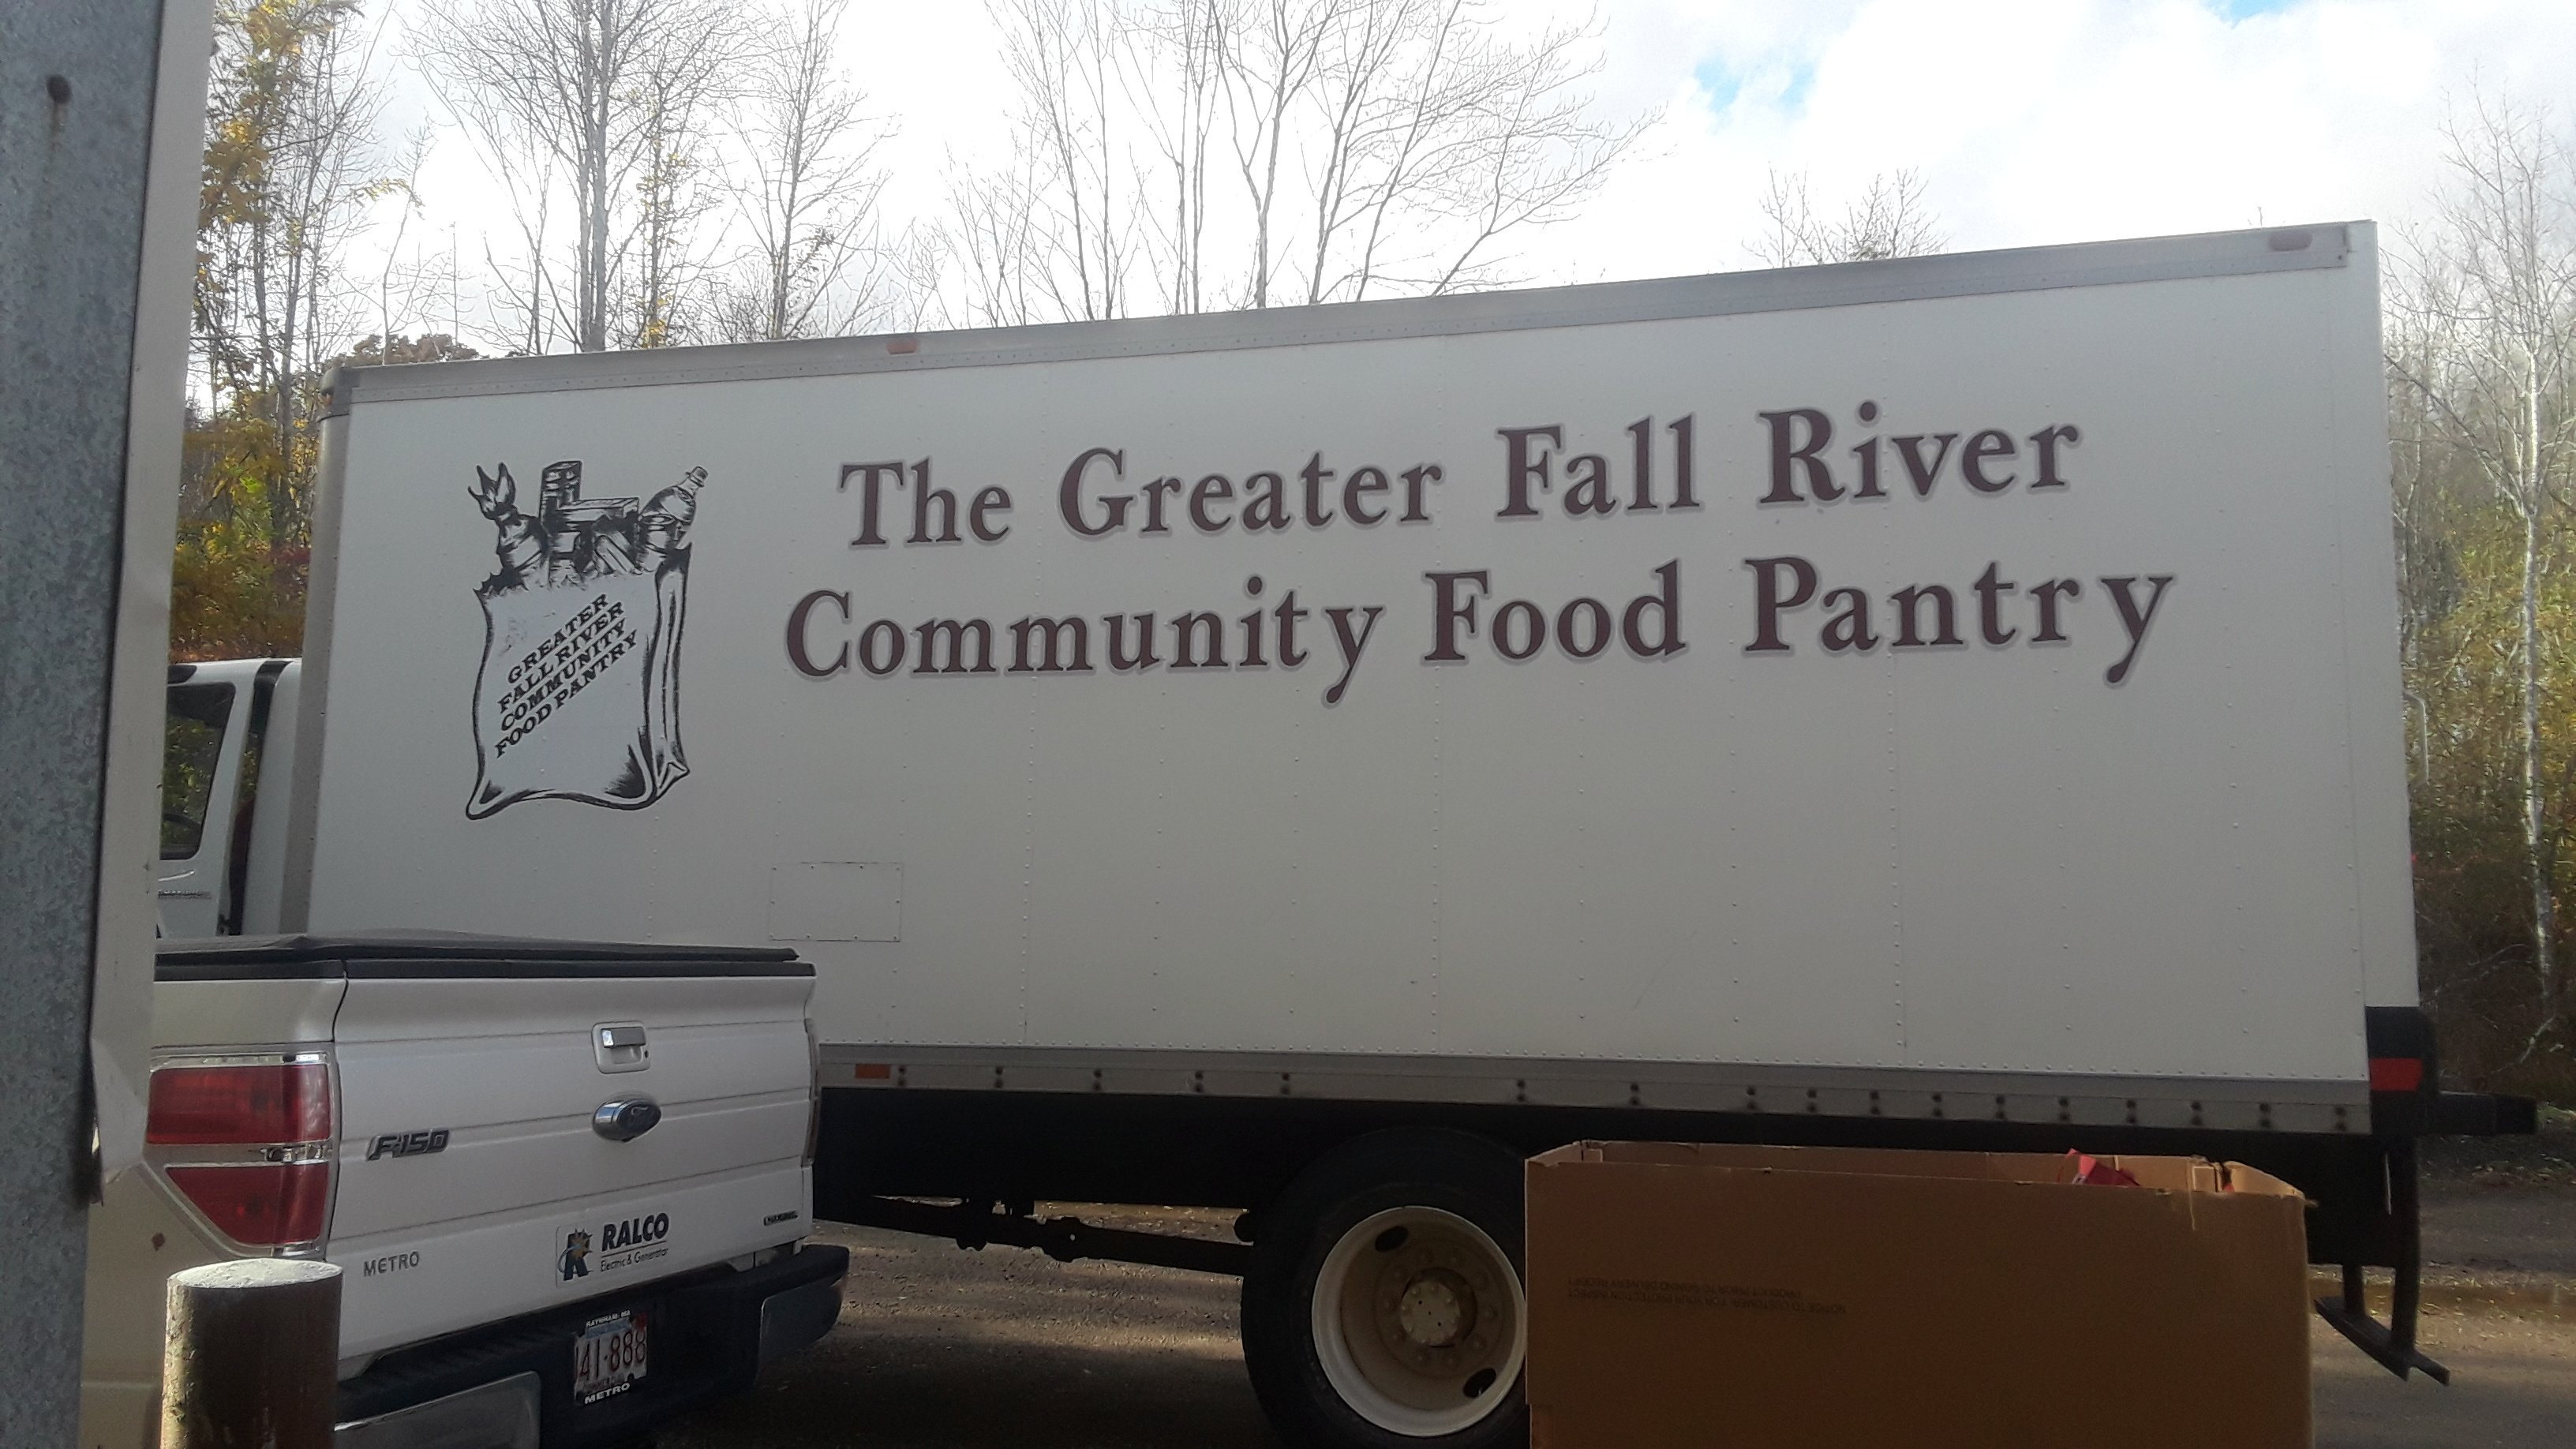 greater fall river community food pantry truck at RALCO food drive